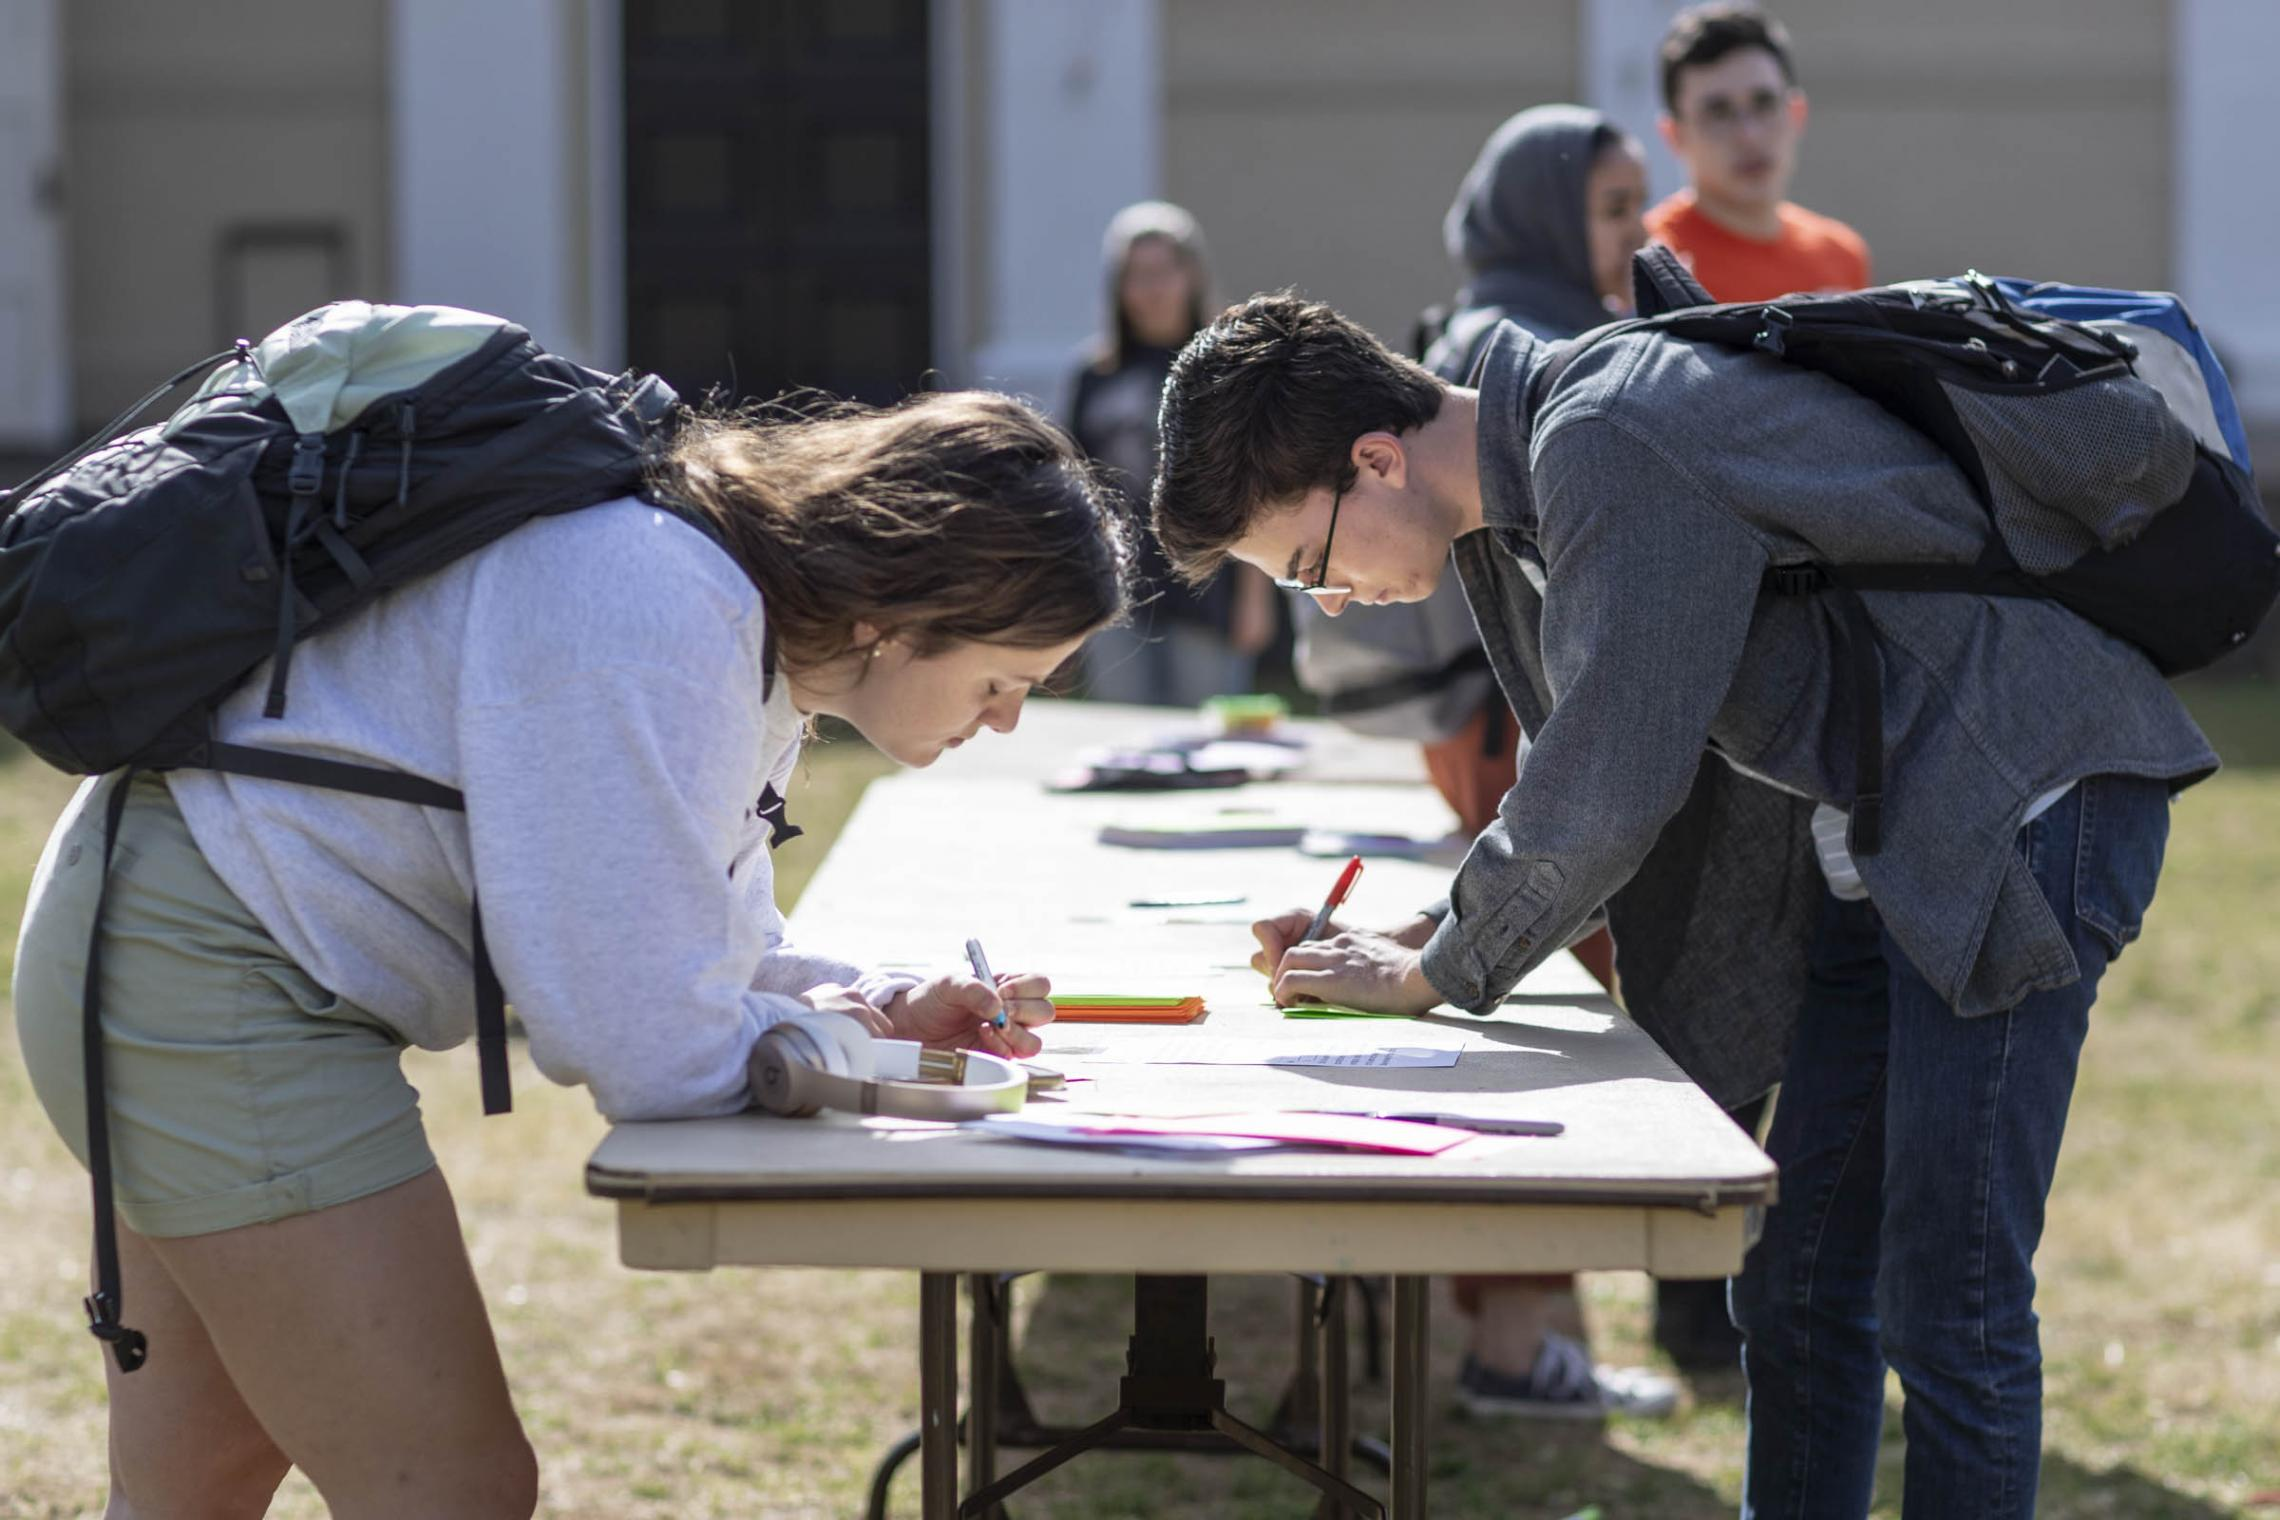 Students write letters to the Jewish community in Pittsburgh, which recently suffered the deadliest attack on Jews in U.S. history.